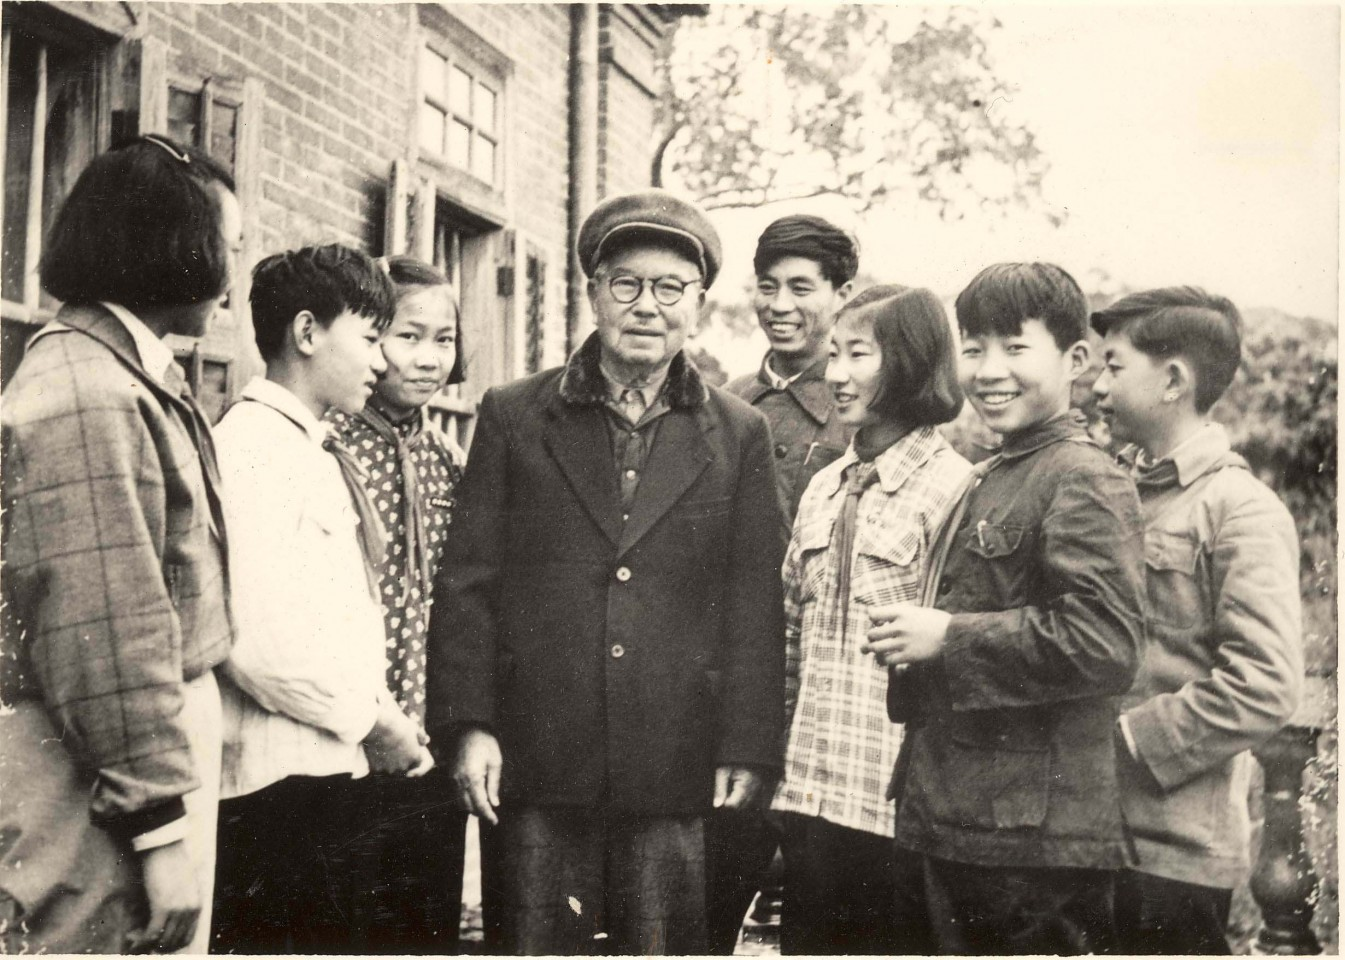 2013 marks the 100th anniversary of the founding of the Jimei School. The photo shows Tan Kah Kee interacting with the students at the school he founded. (The Information Office of Xiamen Municipal People's Government)